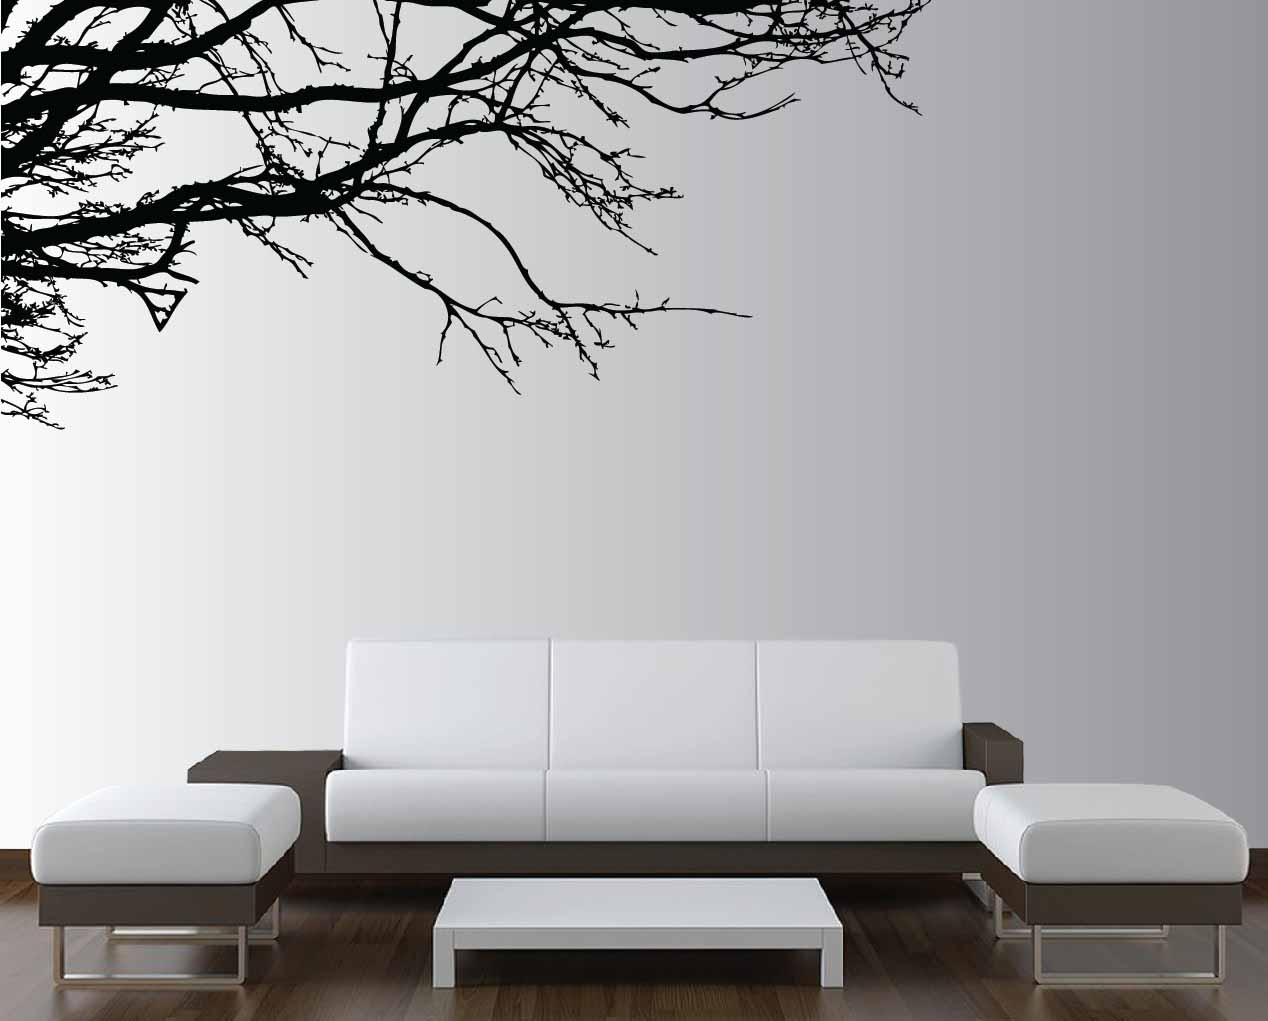 Bedroom wall art designs - Walls Decals